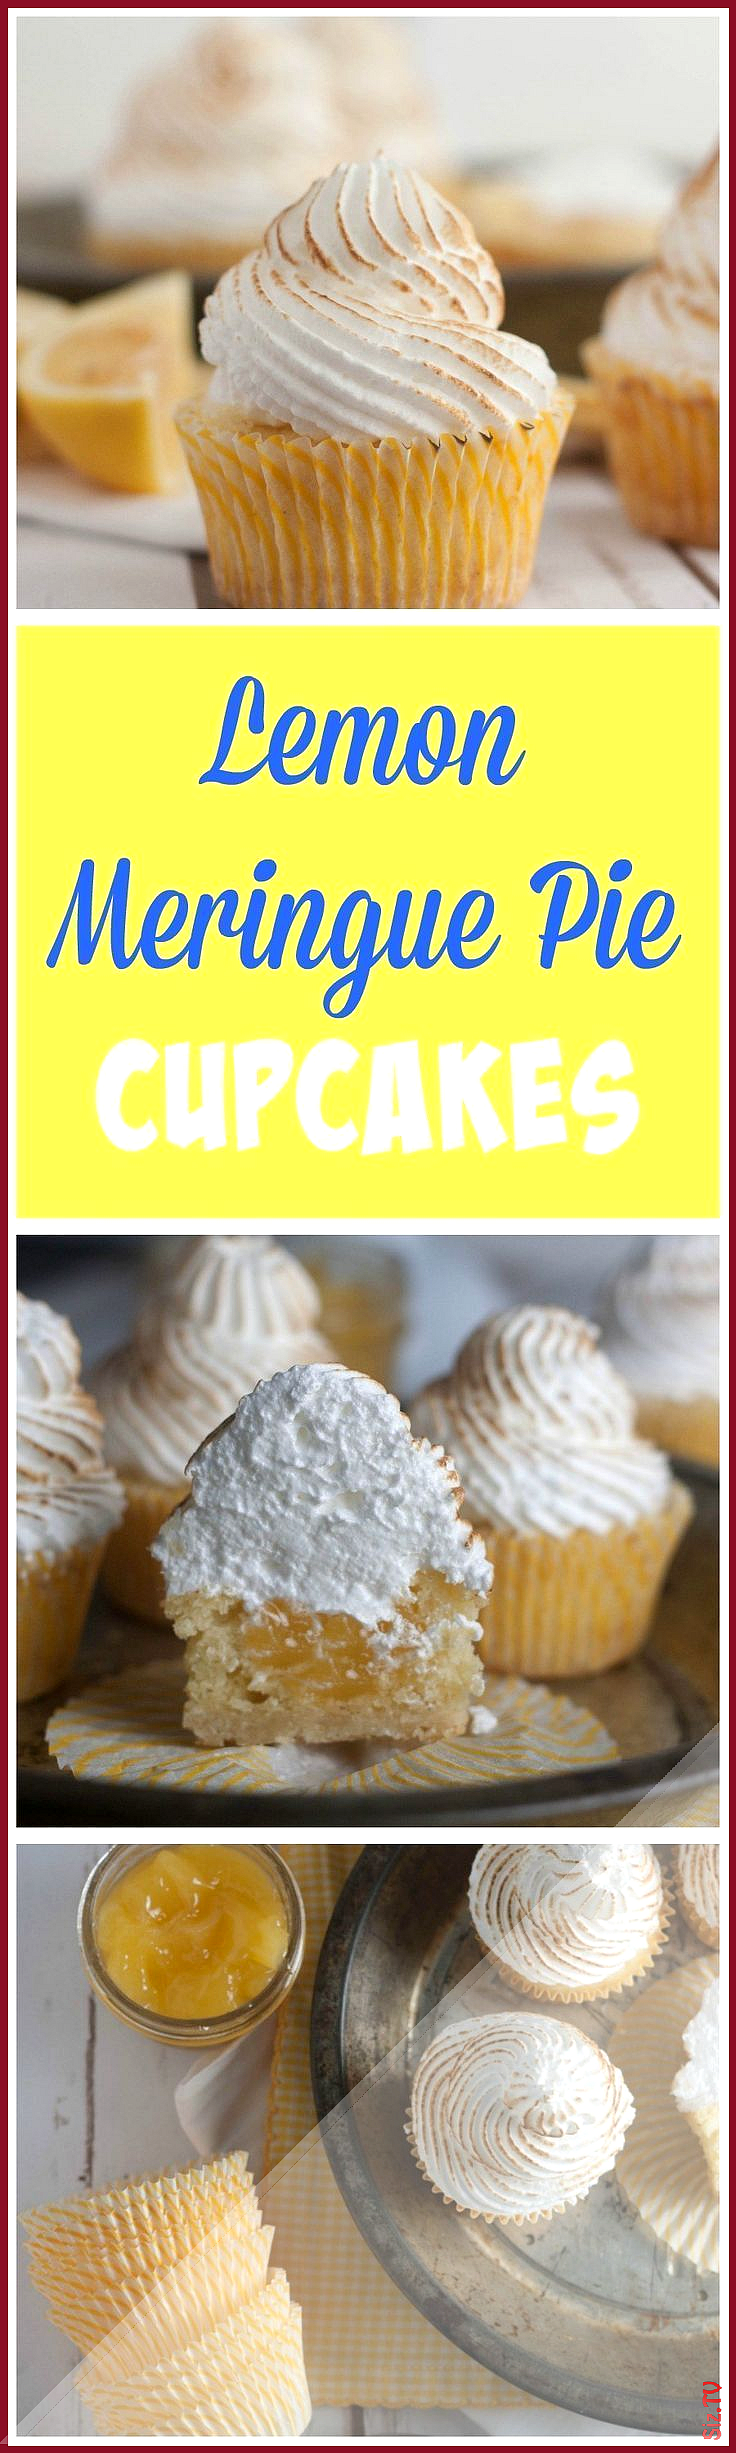 Lemon Meringue Cupcakes Lemon Meringue Cupcakes THE BALLER ON A BUDGET Aileen Luib budgetballer1 Fa